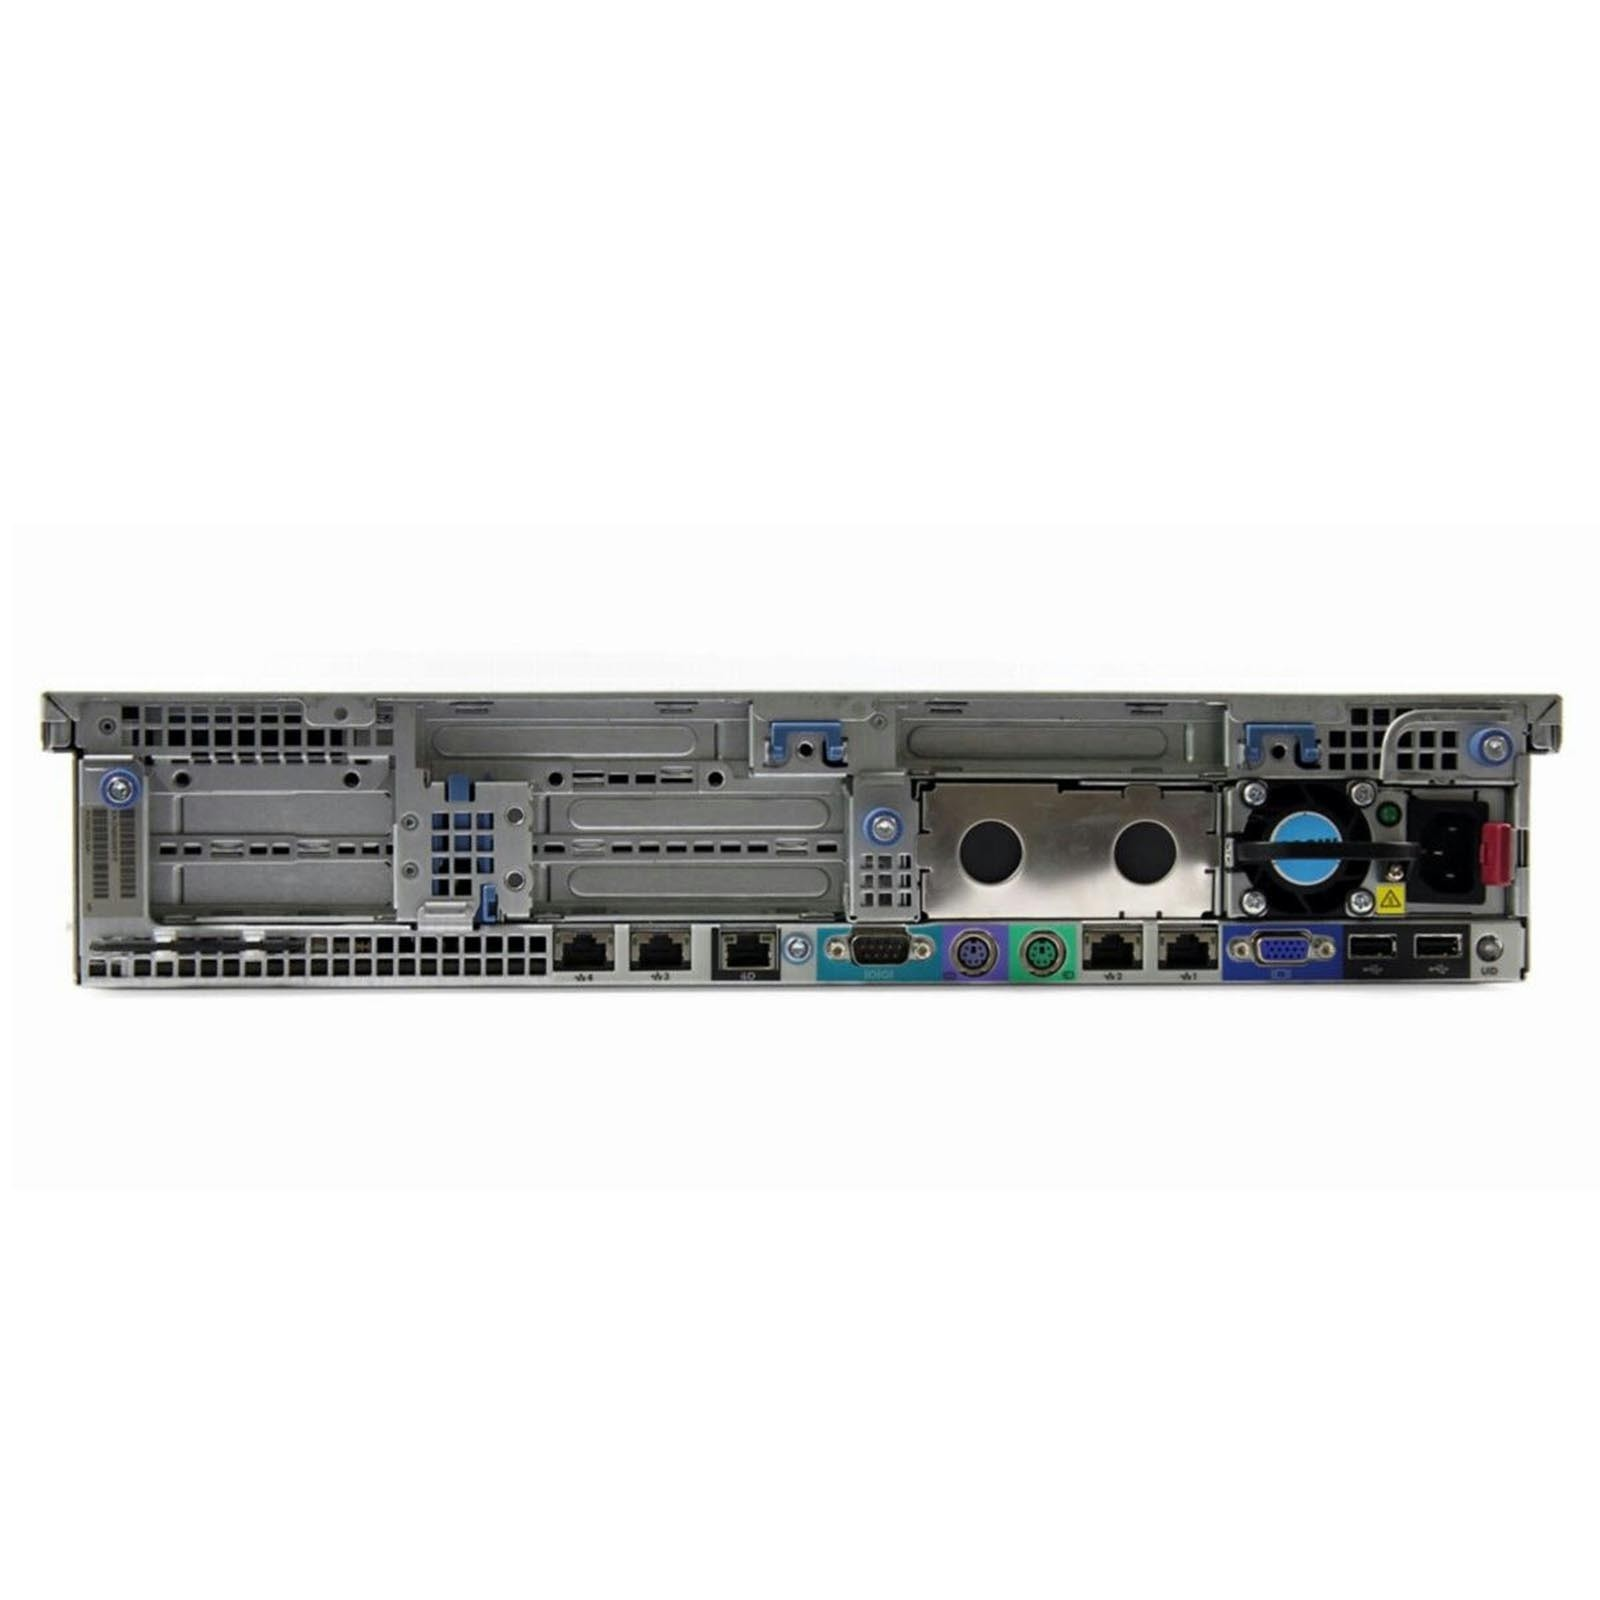 HP PROLIANT DL385 G7 DRIVER FOR WINDOWS 10